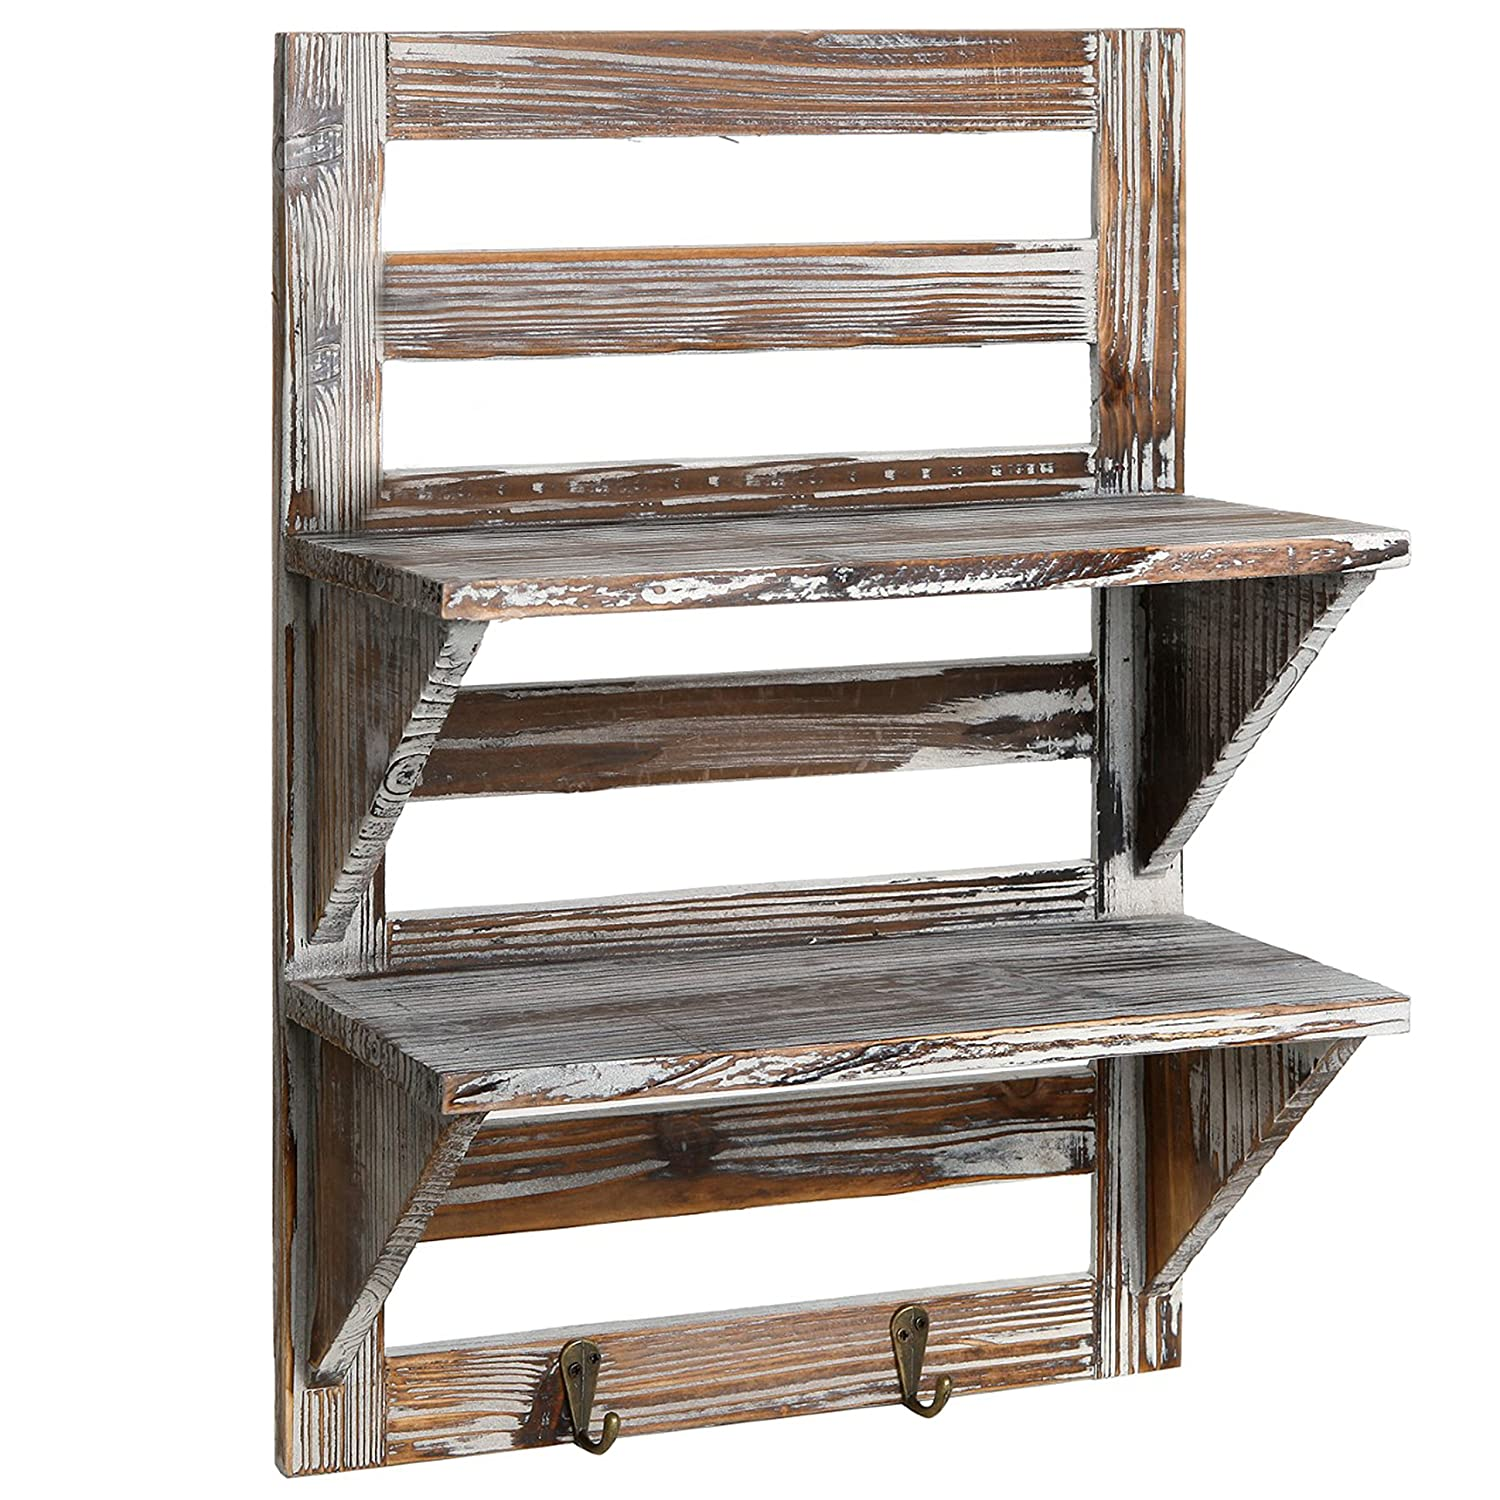 Superieur Amazon.com: MyGift Rustic Wood Wall Mounted Organizer Shelves W/ 2 Hooks,  2 Tier Storage Rack, Brown: Home U0026 Kitchen